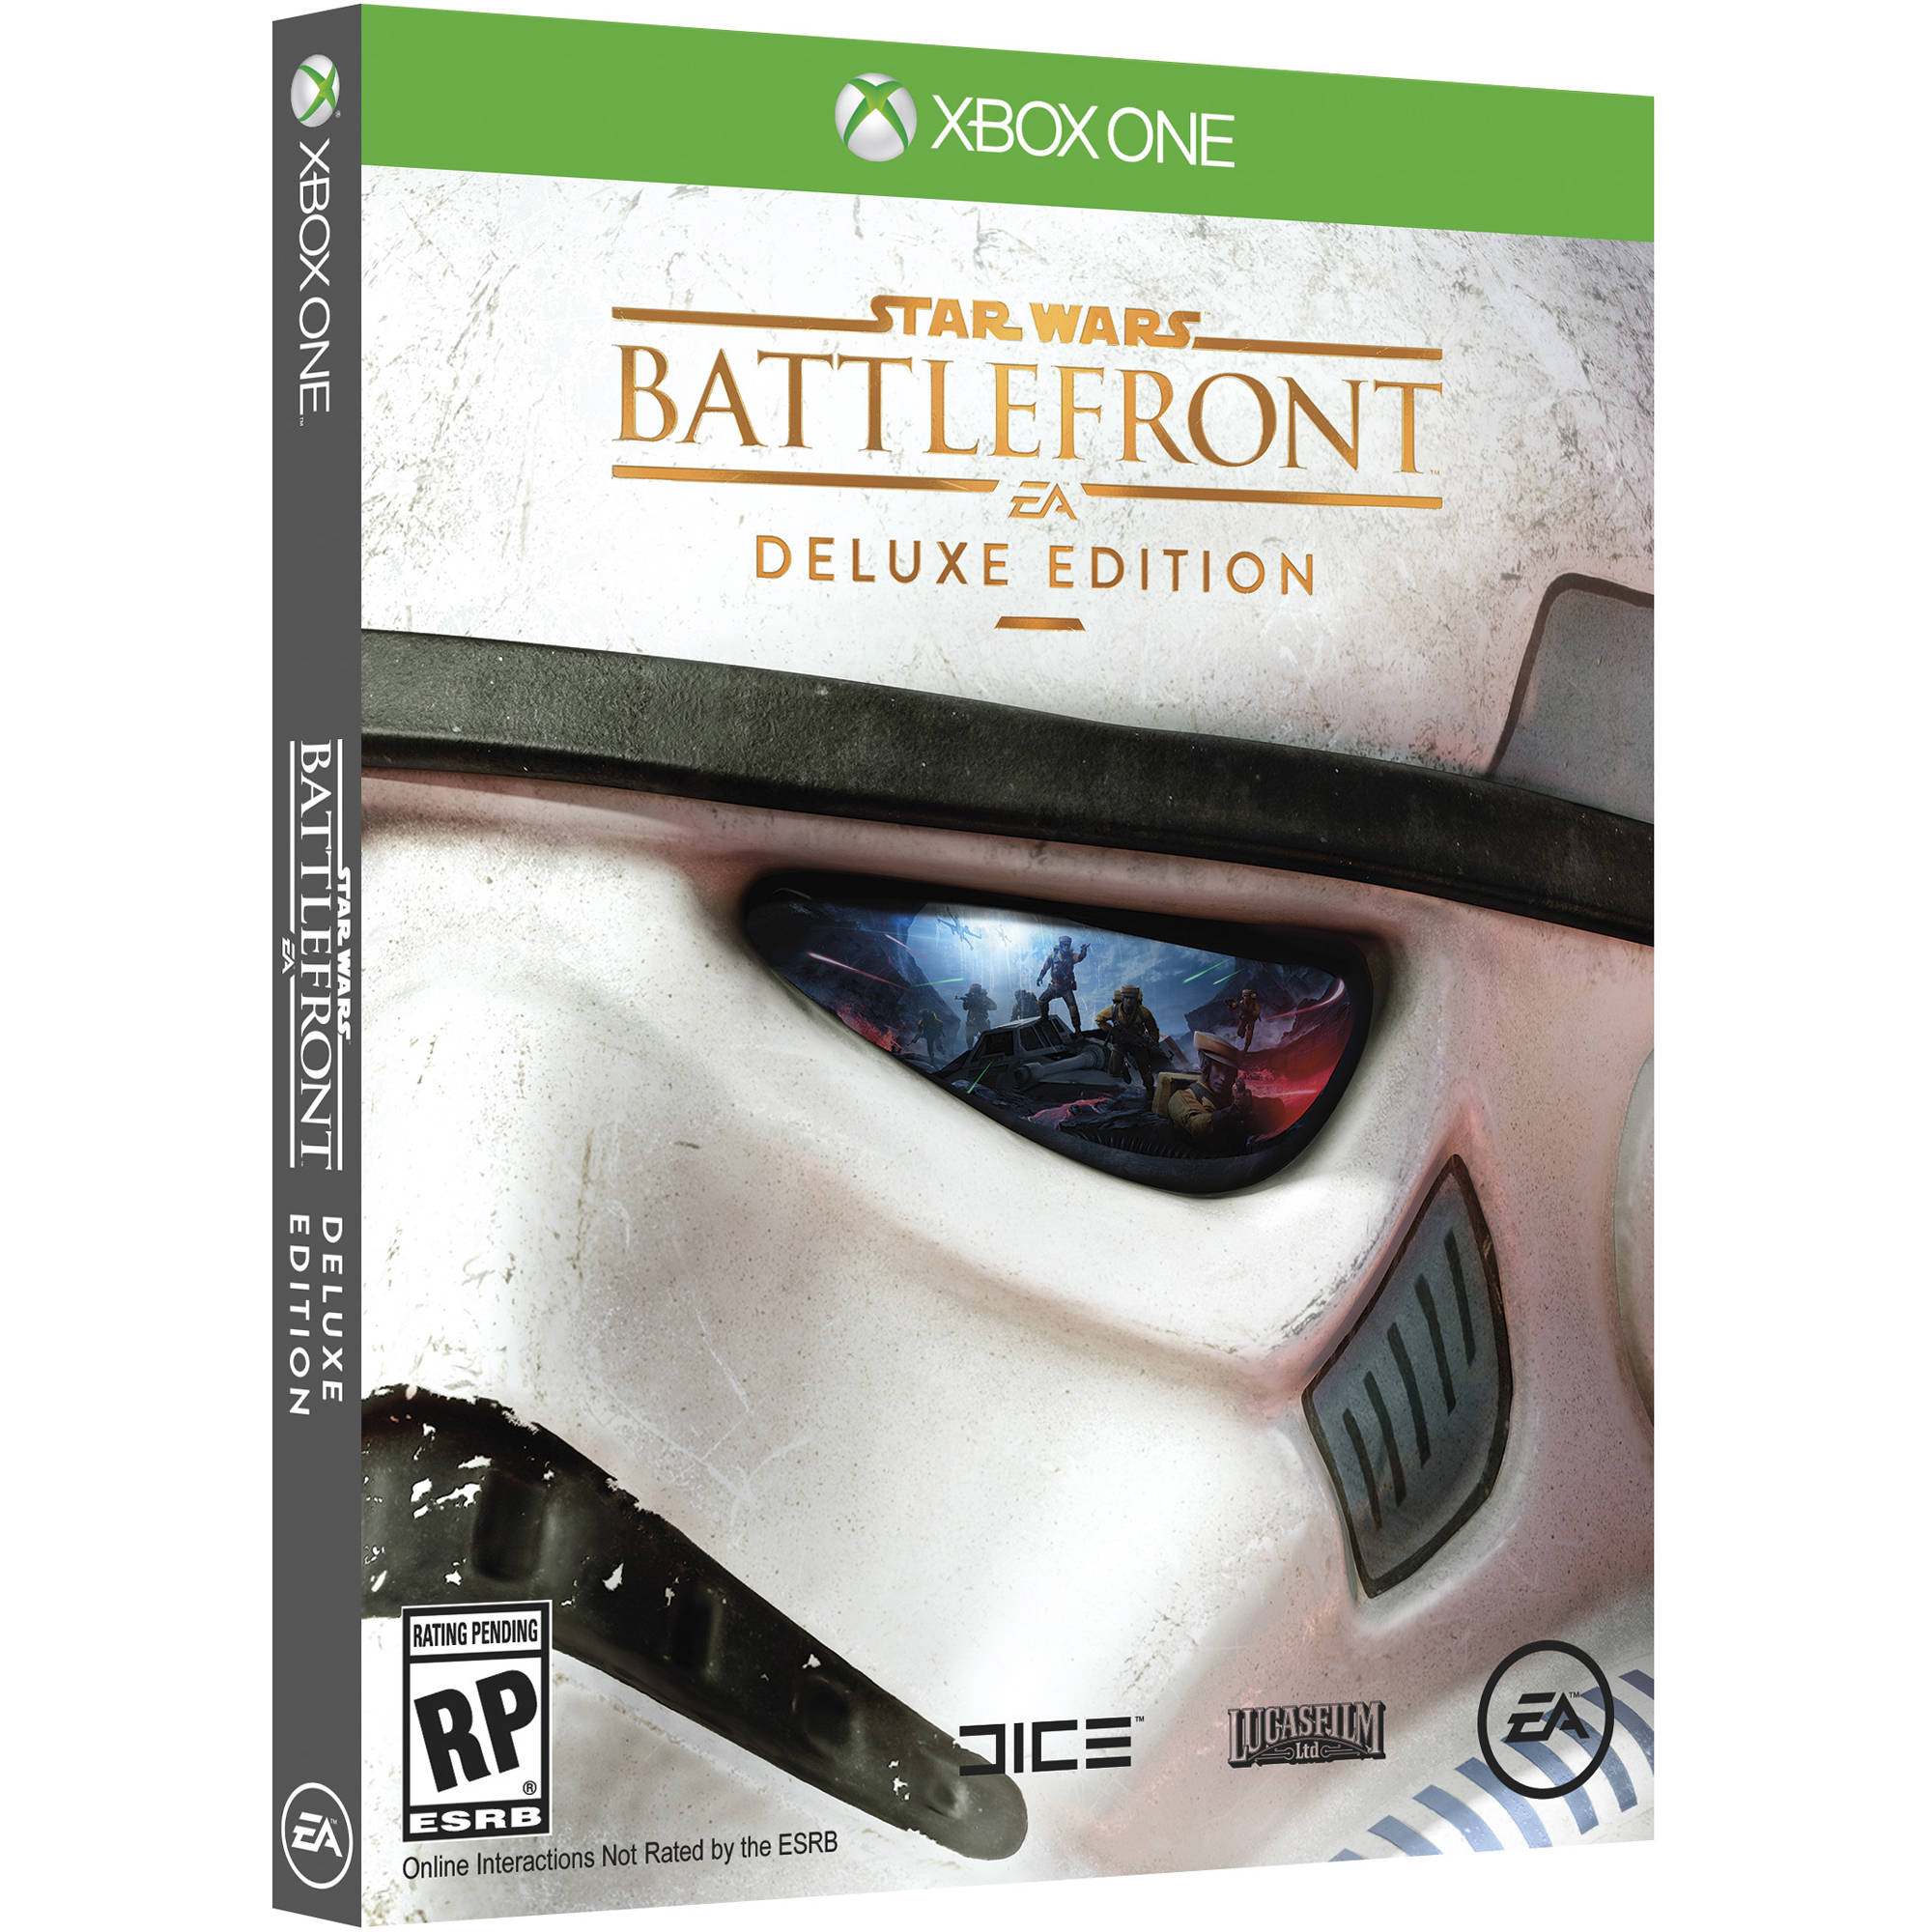 Xbox Edition Star Wars Electronic Arts Star Wars Battlefront Deluxe